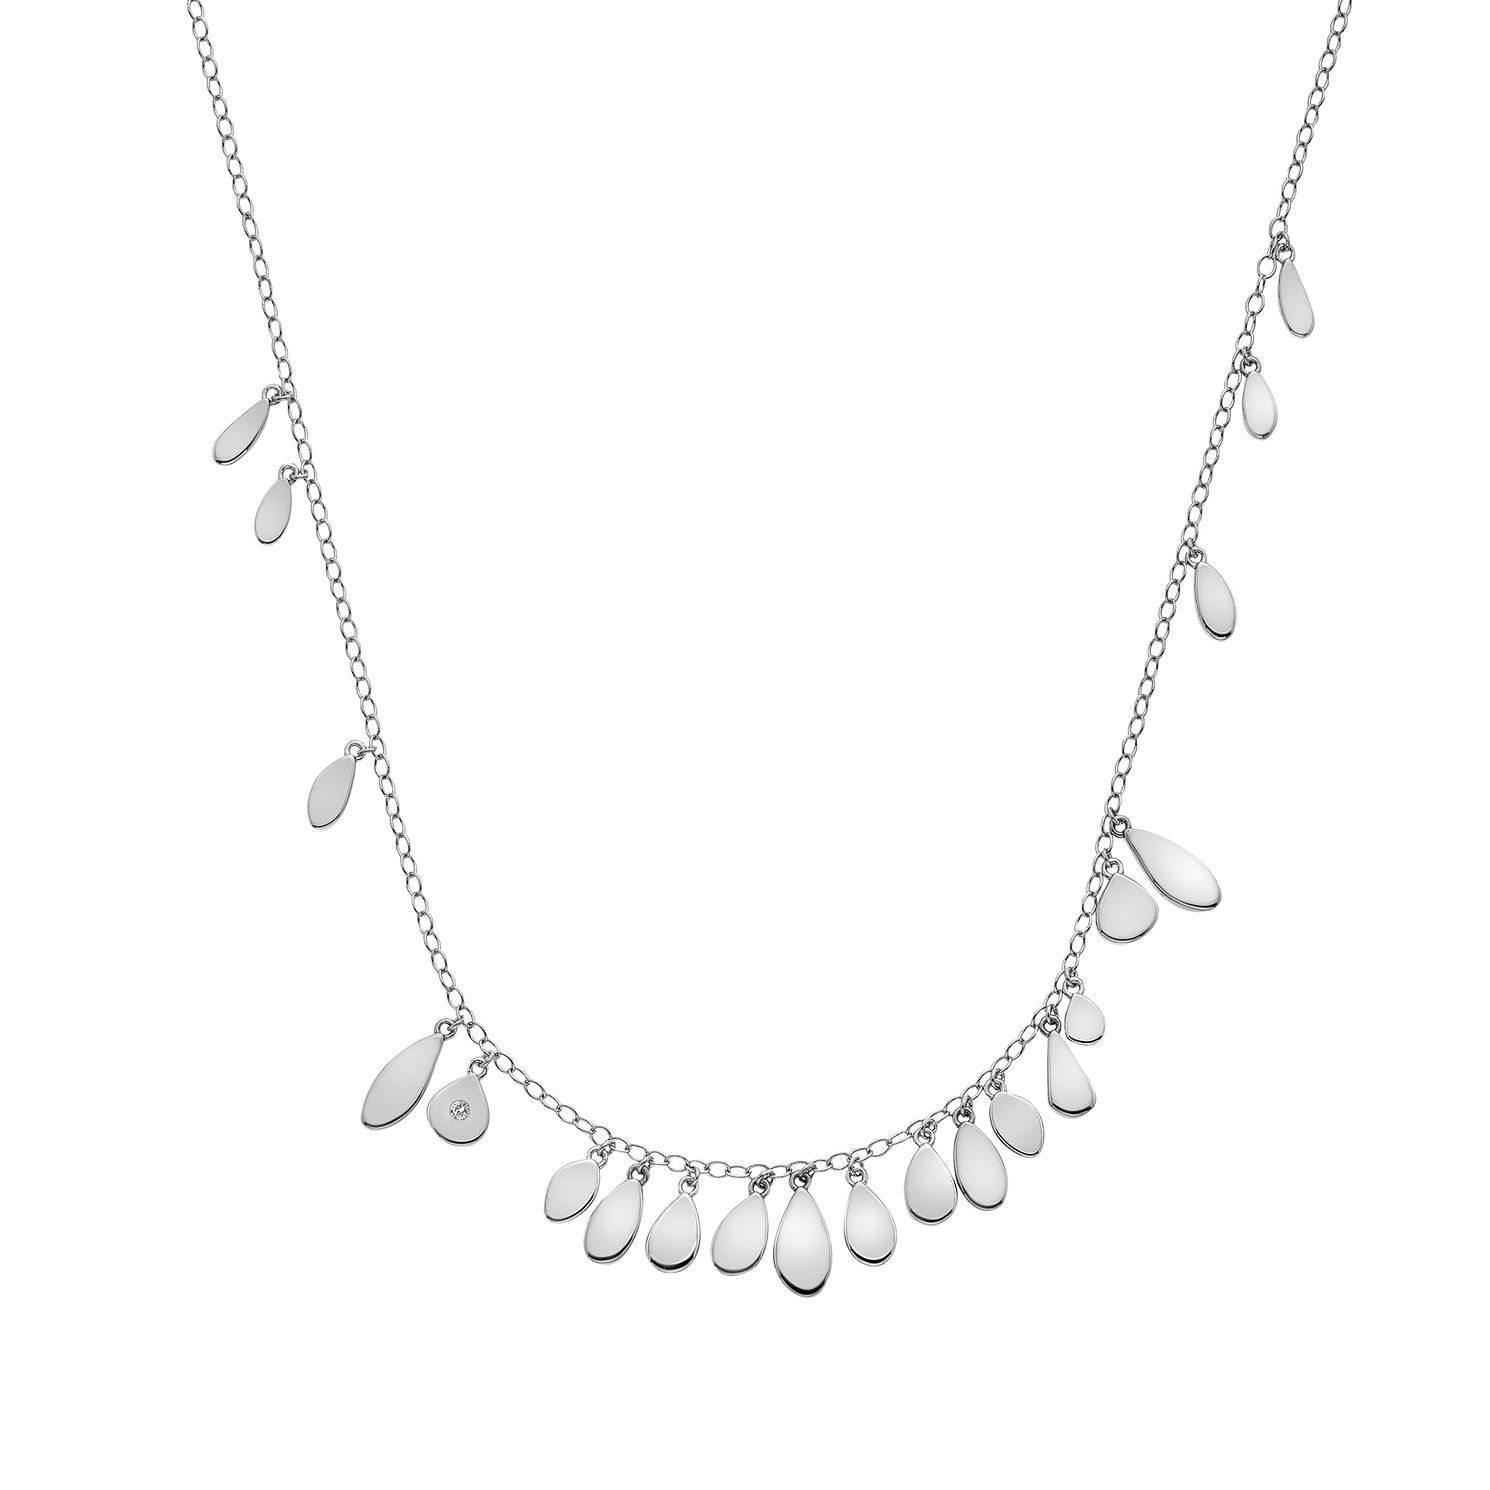 Hot Diamonds Sterling Silver Monsoon Statement Necklace - Product number 5946913